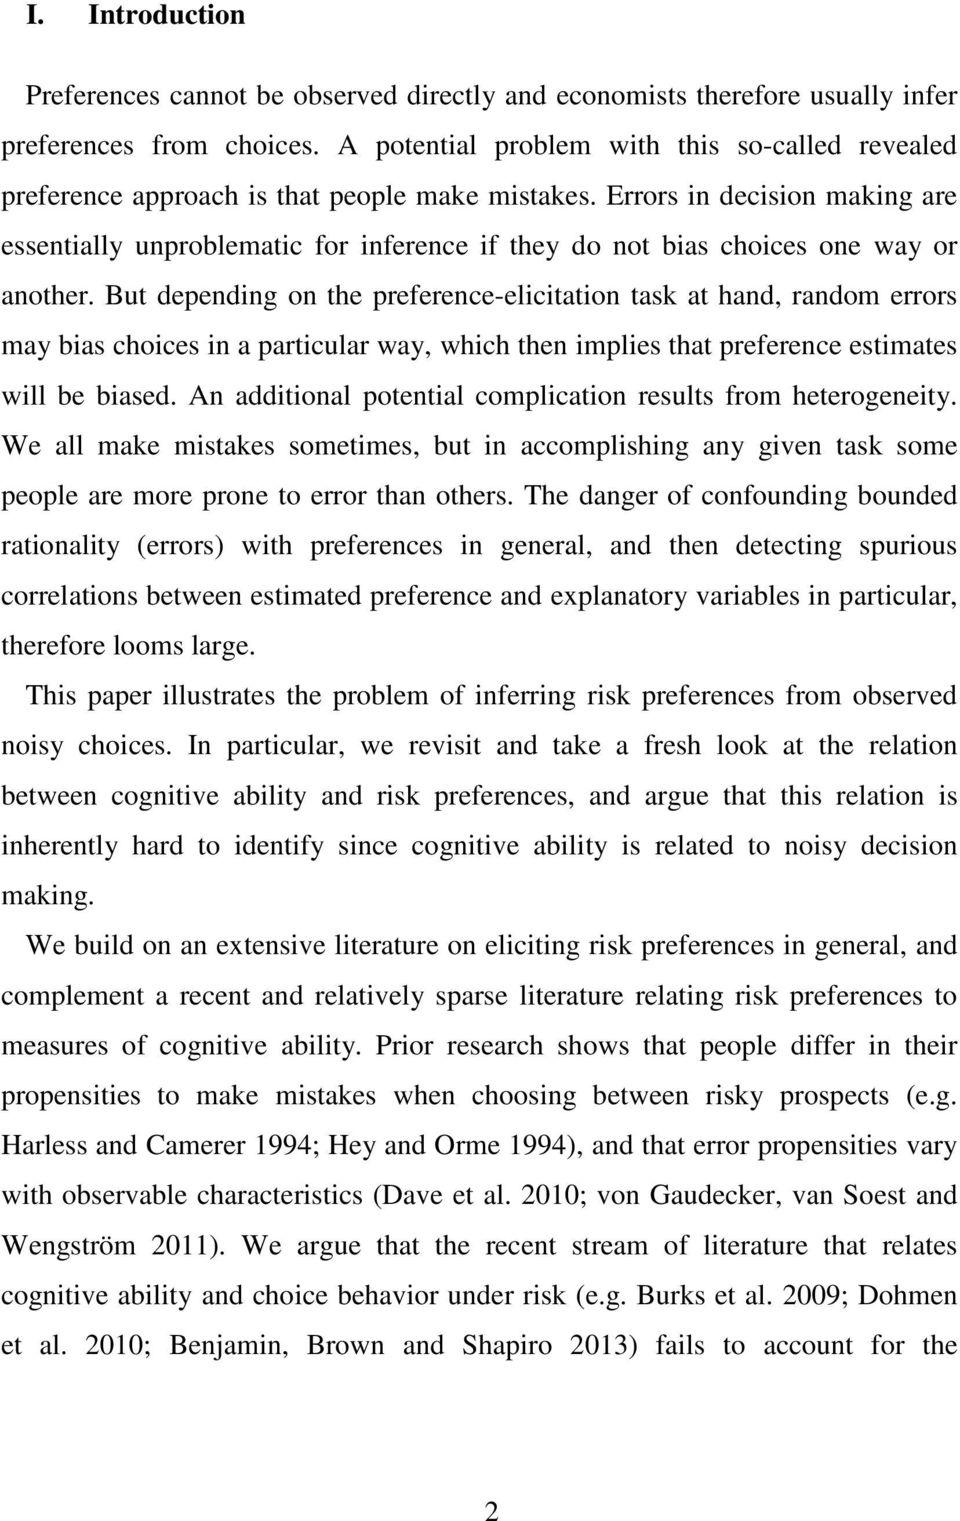 Errors in decision making are essentially unproblematic for inference if they do not bias choices one way or another.